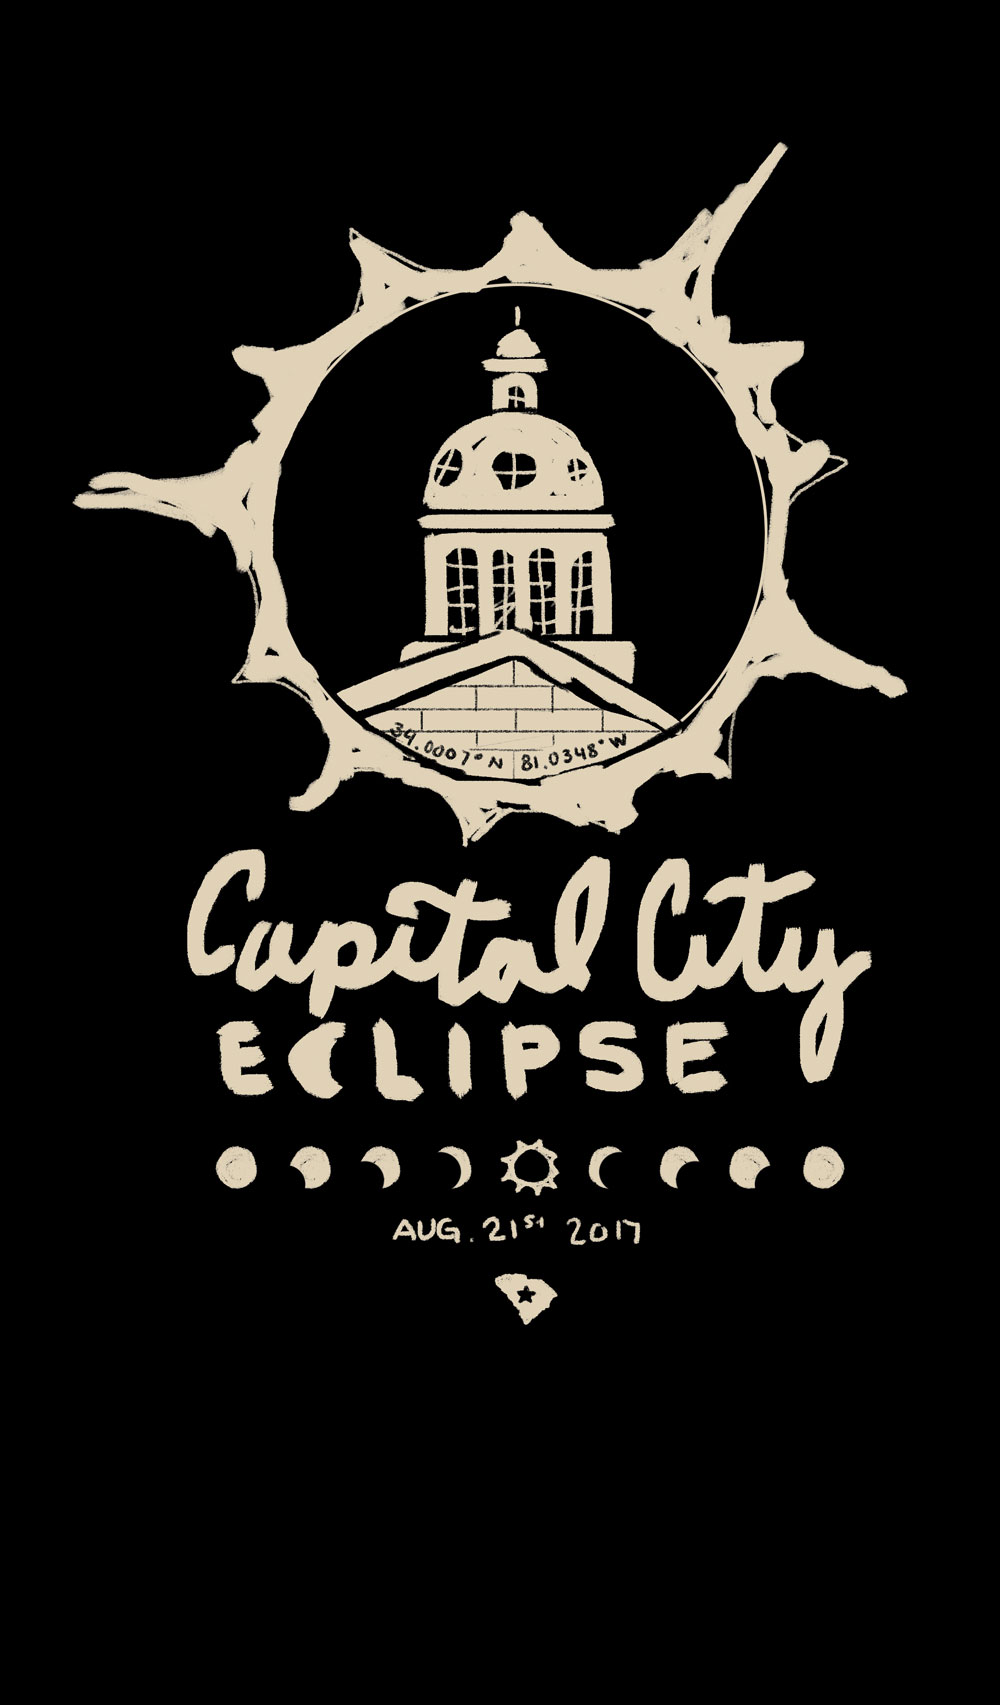 1. This one uses the State House contained in a total eclipse.